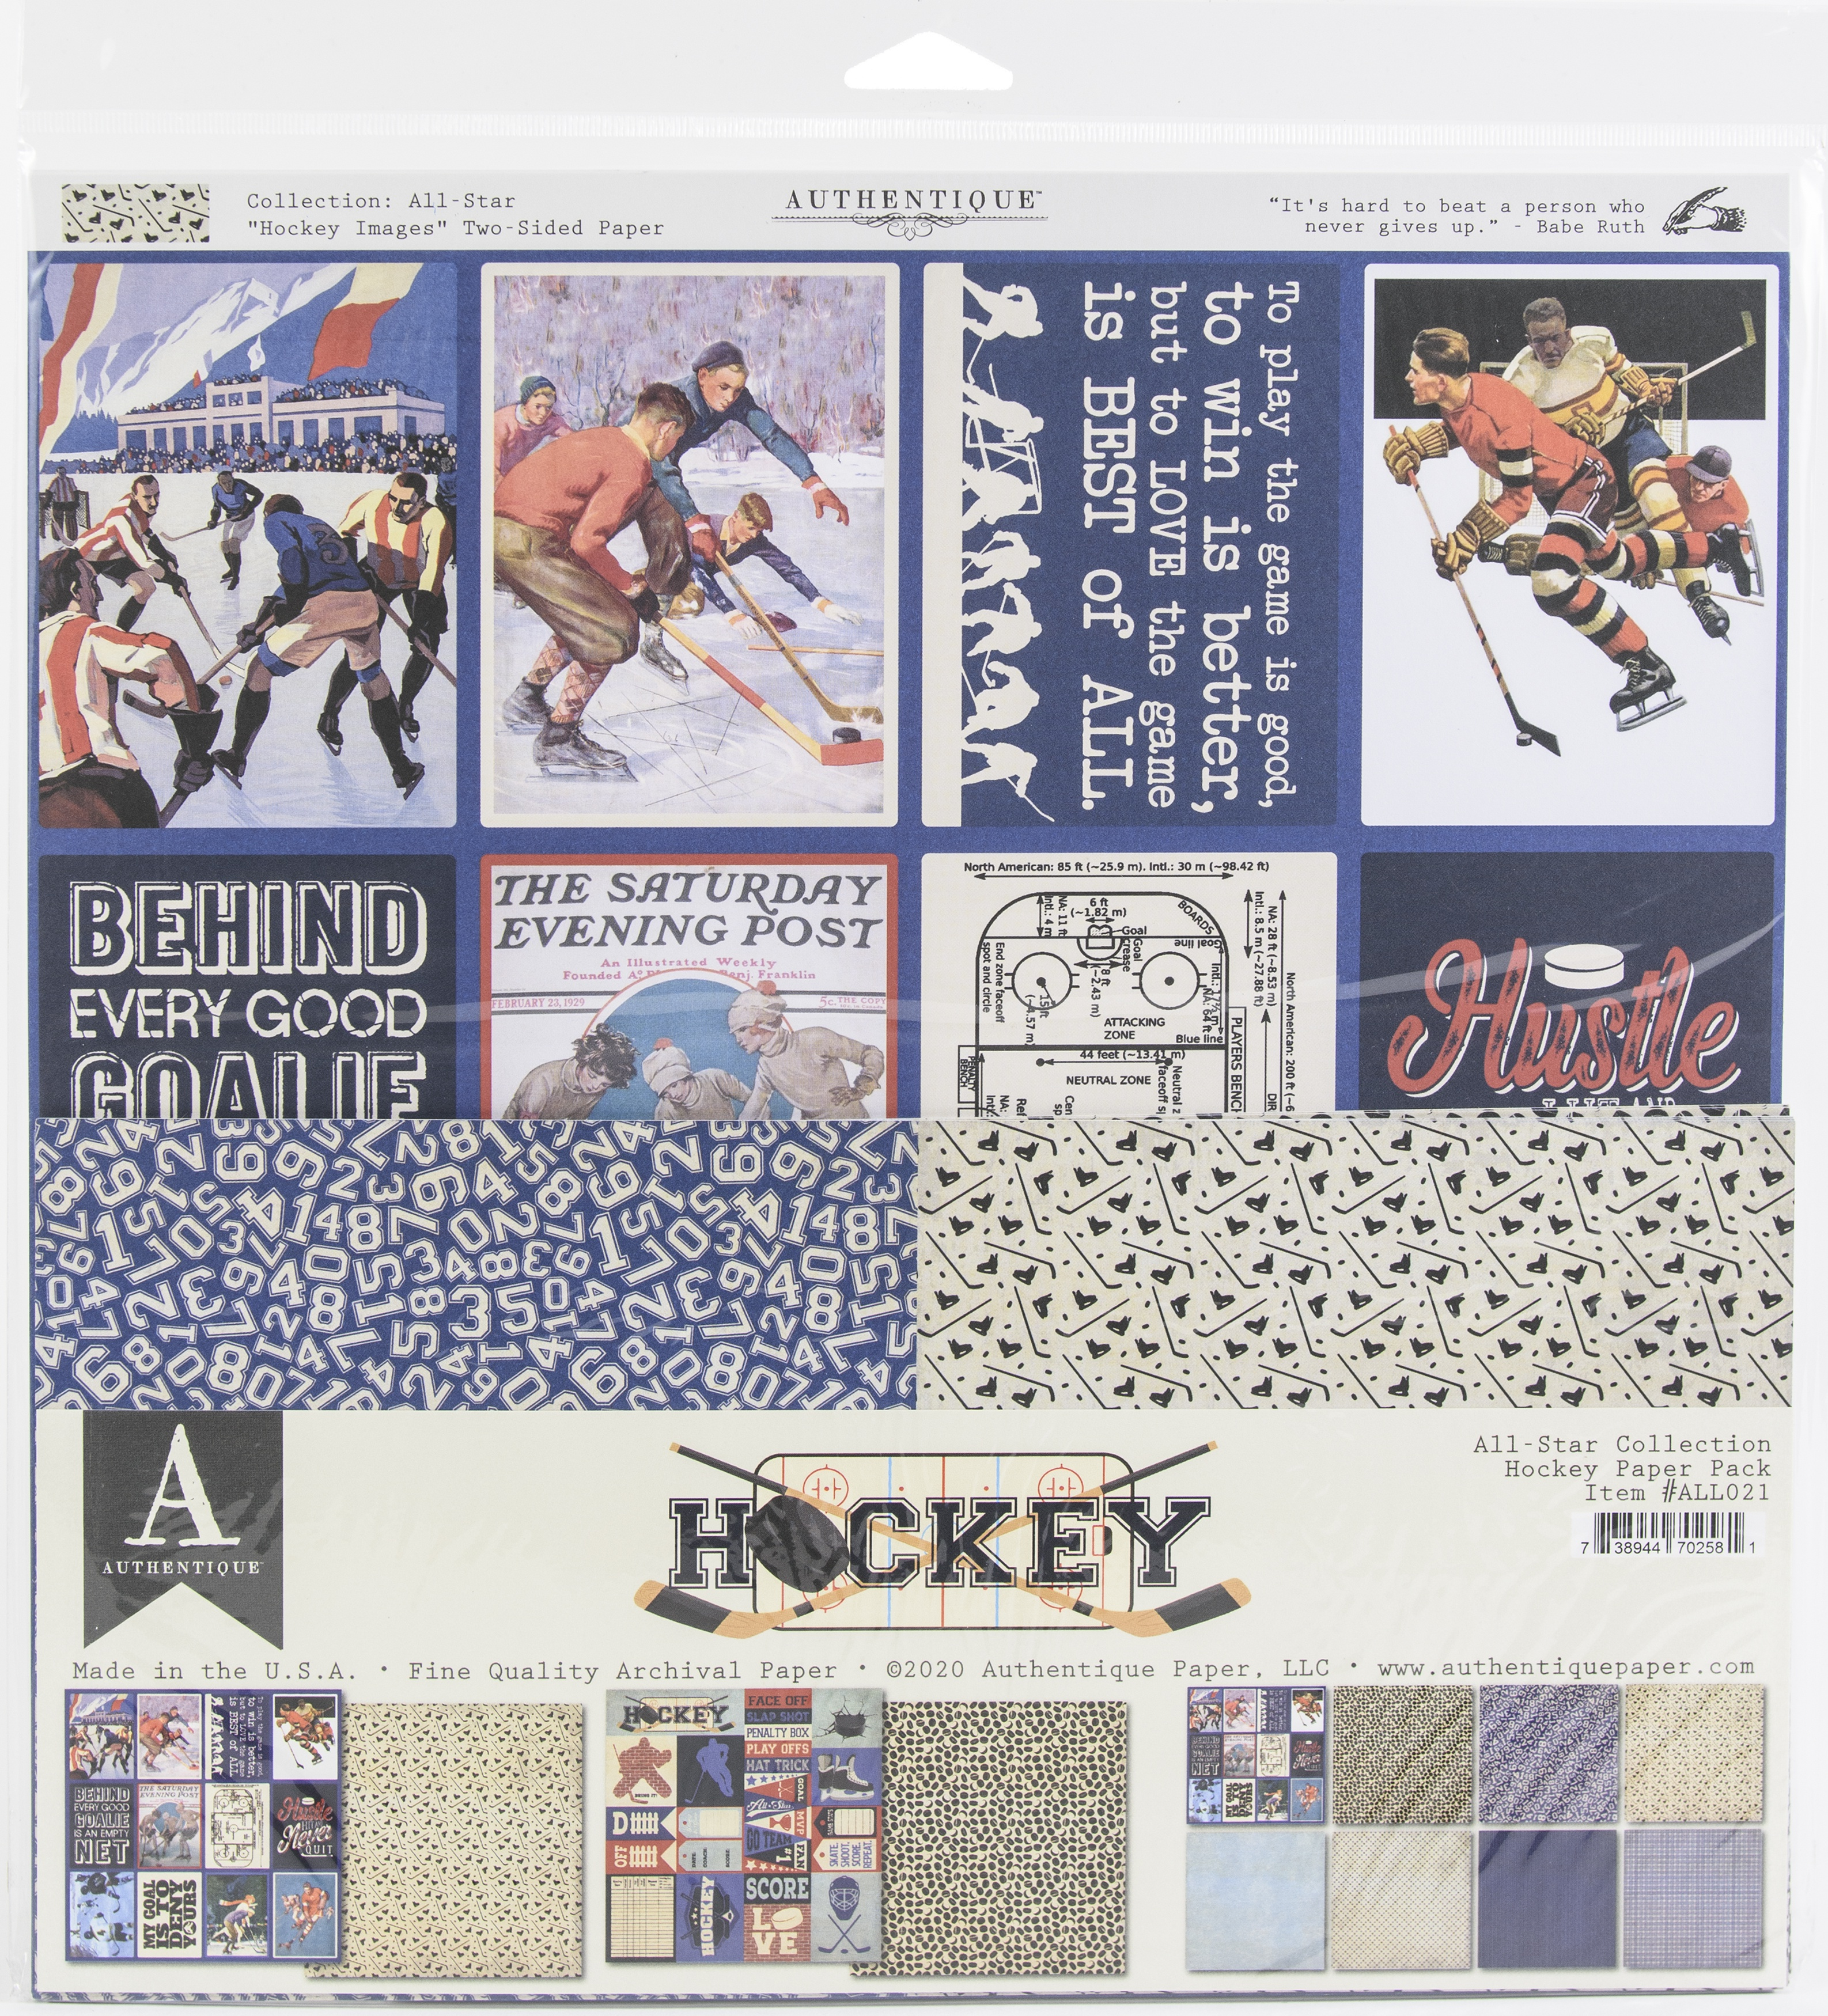 Authentique All-Star Paper Pack-Hockey